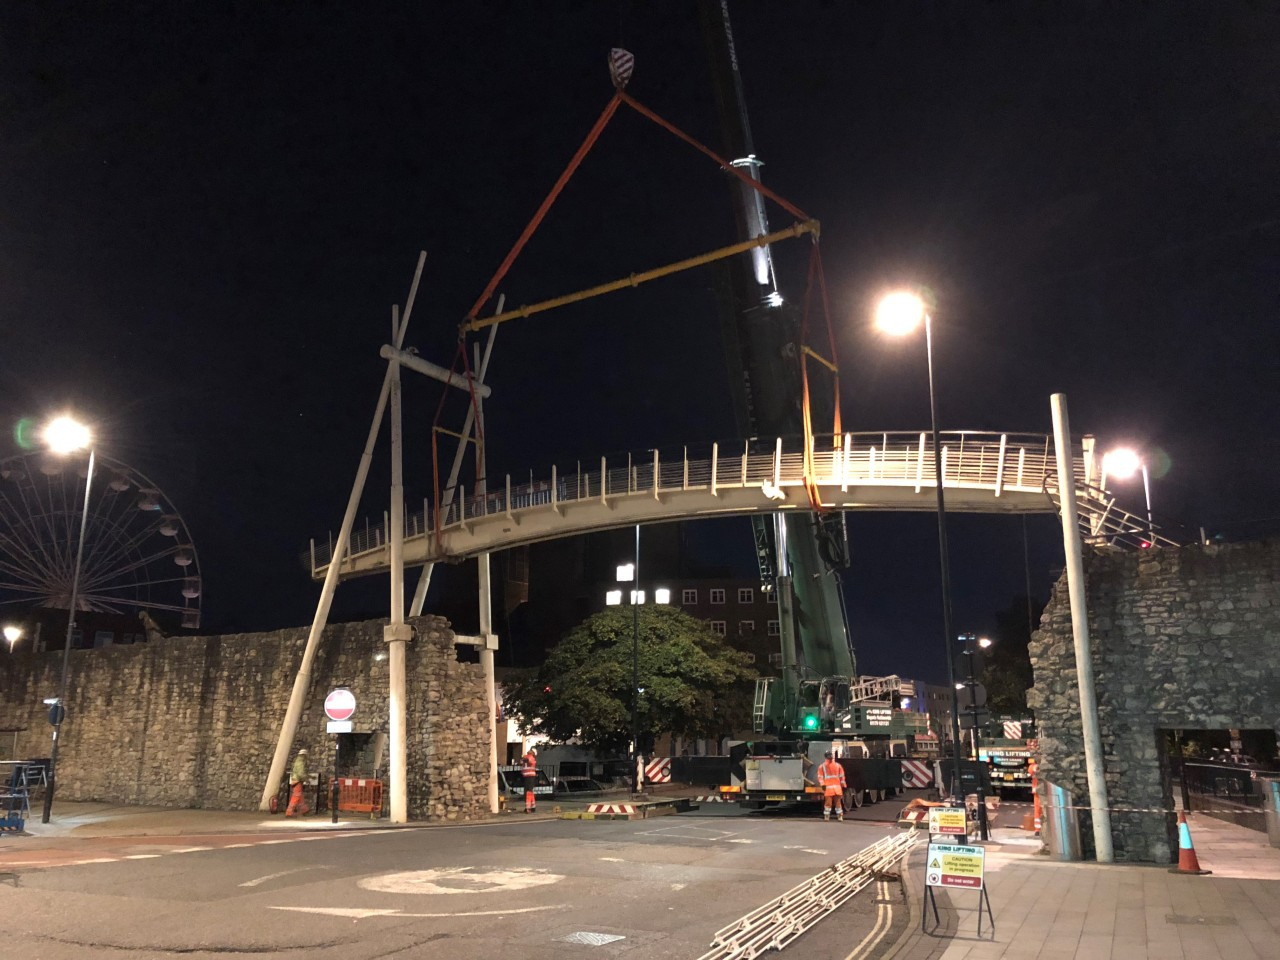 Modulift Beams Integral to Preserving Unique Southampton Heritage